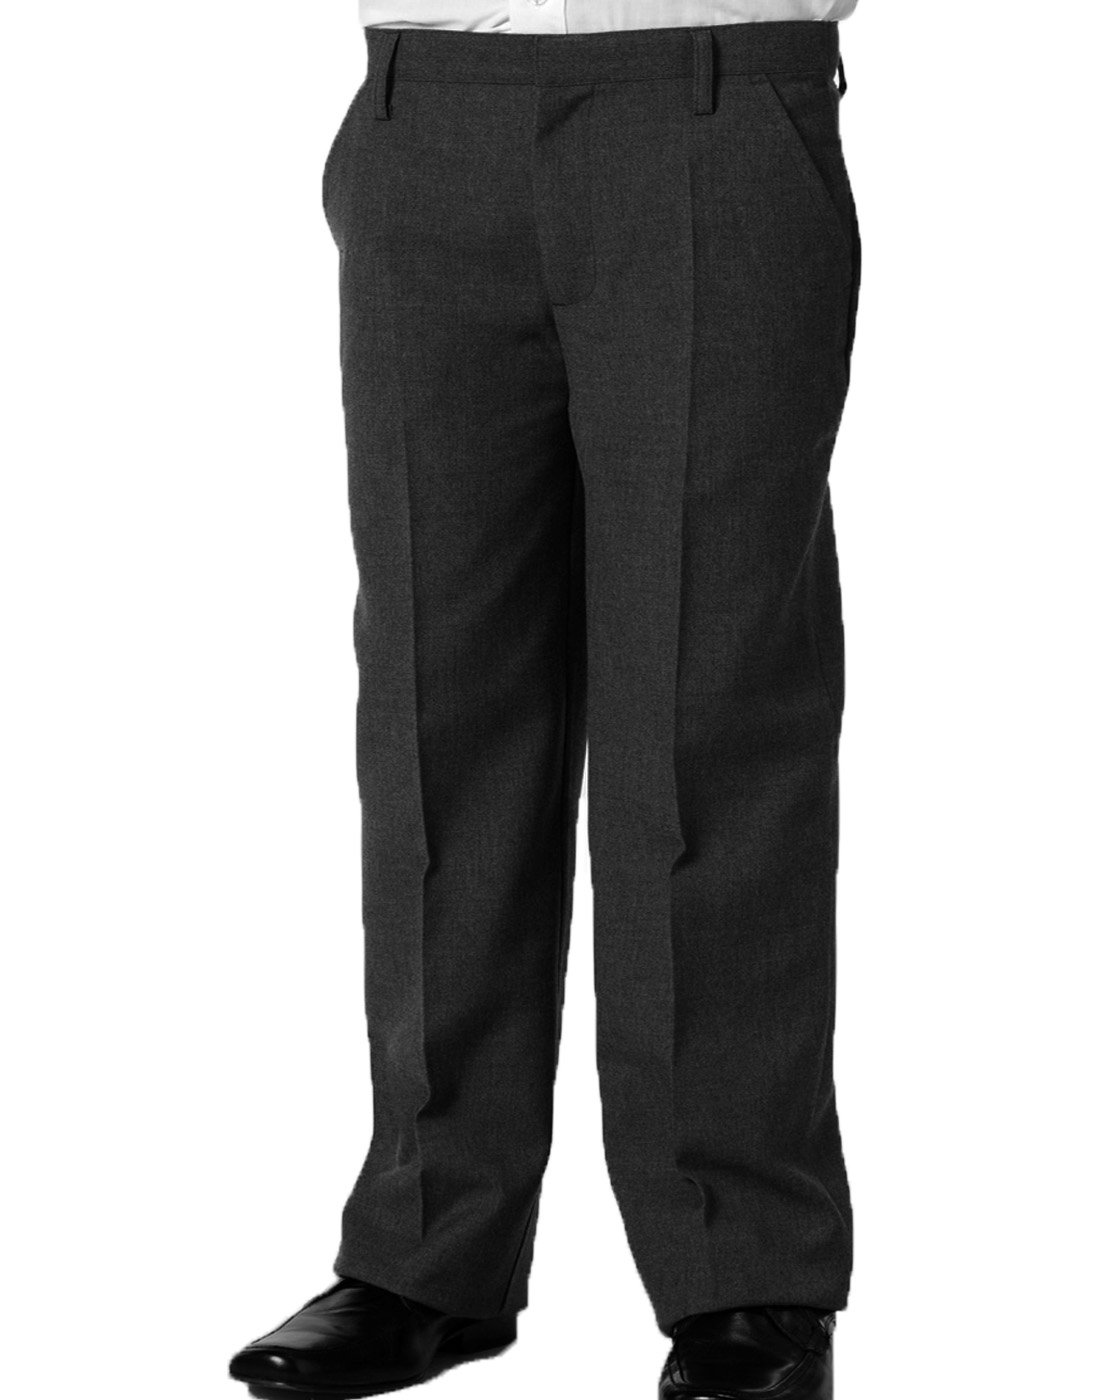 Dalsa Boys Plus Size Generous FIT Sturdy School/Formal Trousers/Short Leg in Black,Grey, Navy, Charcoal